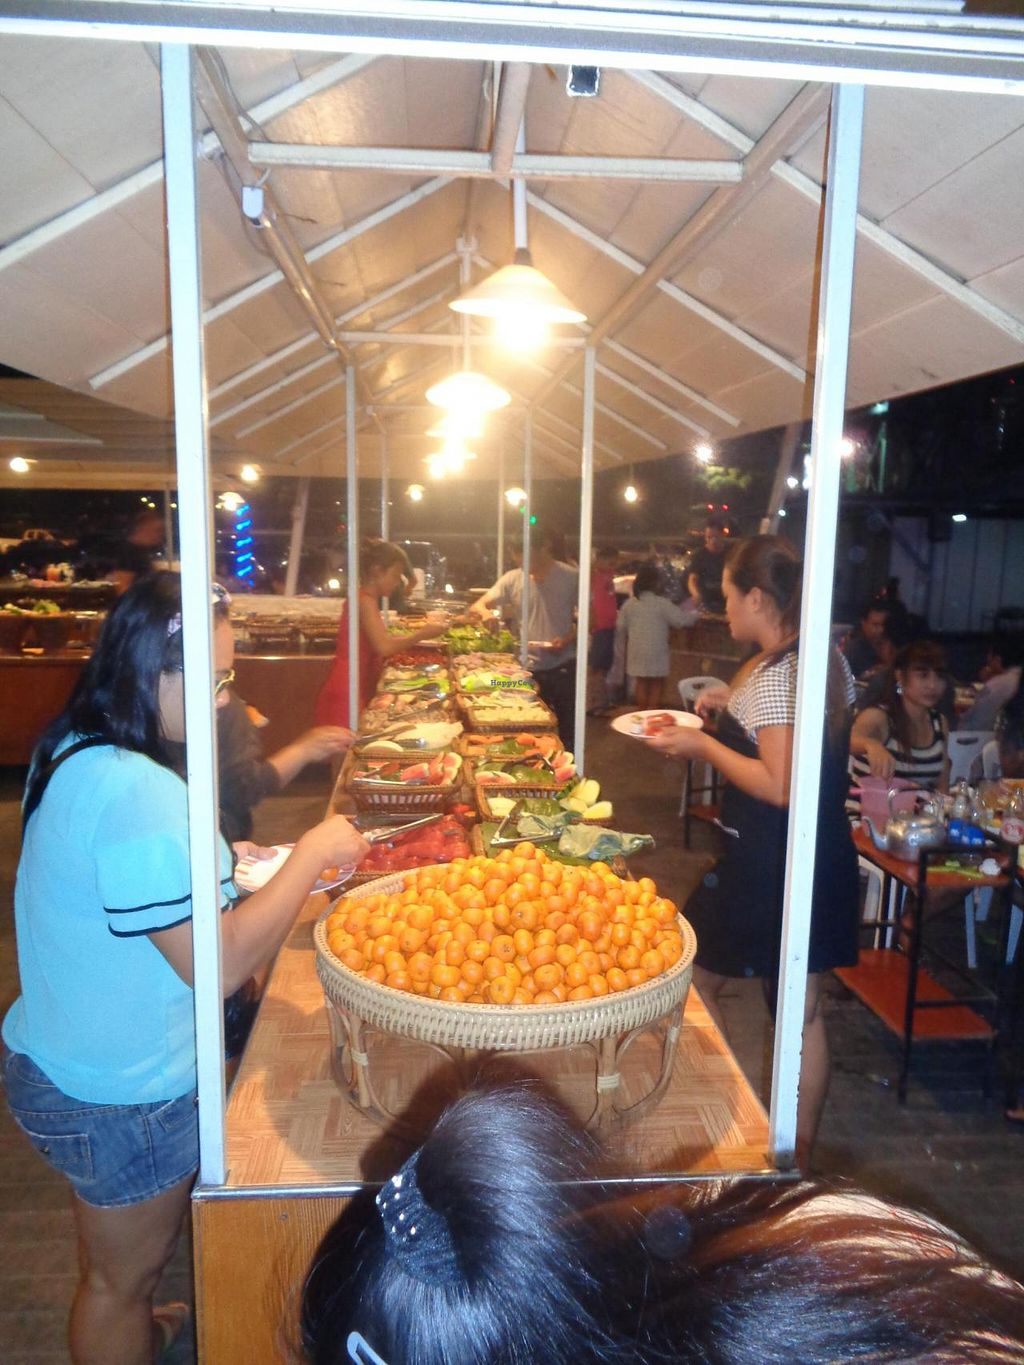 "Photo of Market Buffet  by <a href=""/members/profile/Kelly%20Kelly"">Kelly Kelly</a> <br/>Largest selection I have ever seen at a buffet and all for 239 Baht ($7 US) <br/> January 23, 2015  - <a href='/contact/abuse/image/54800/91101'>Report</a>"